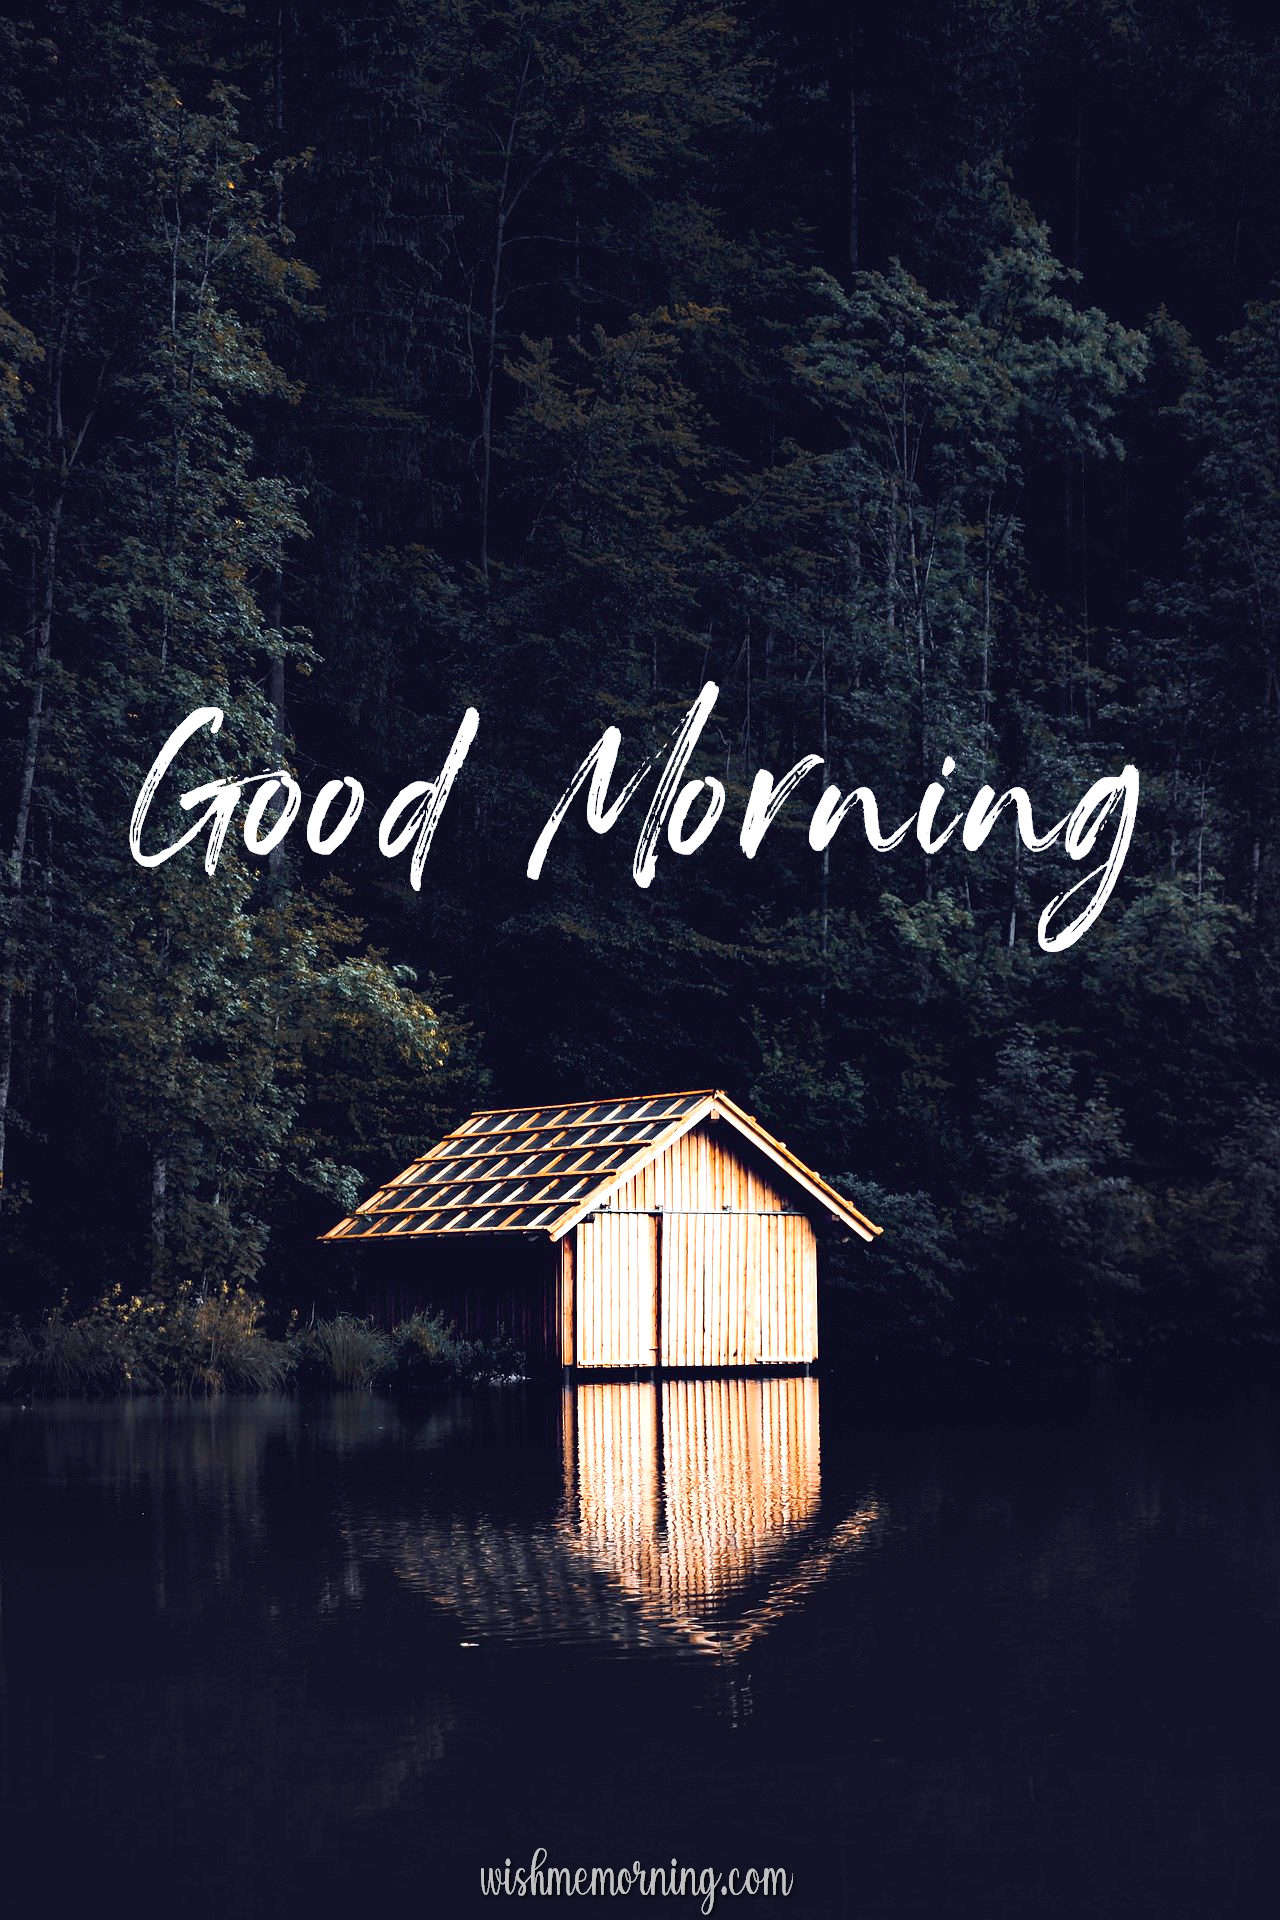 Beautiful Trees Woods Nature Images Wishes wishmemorning.com 2